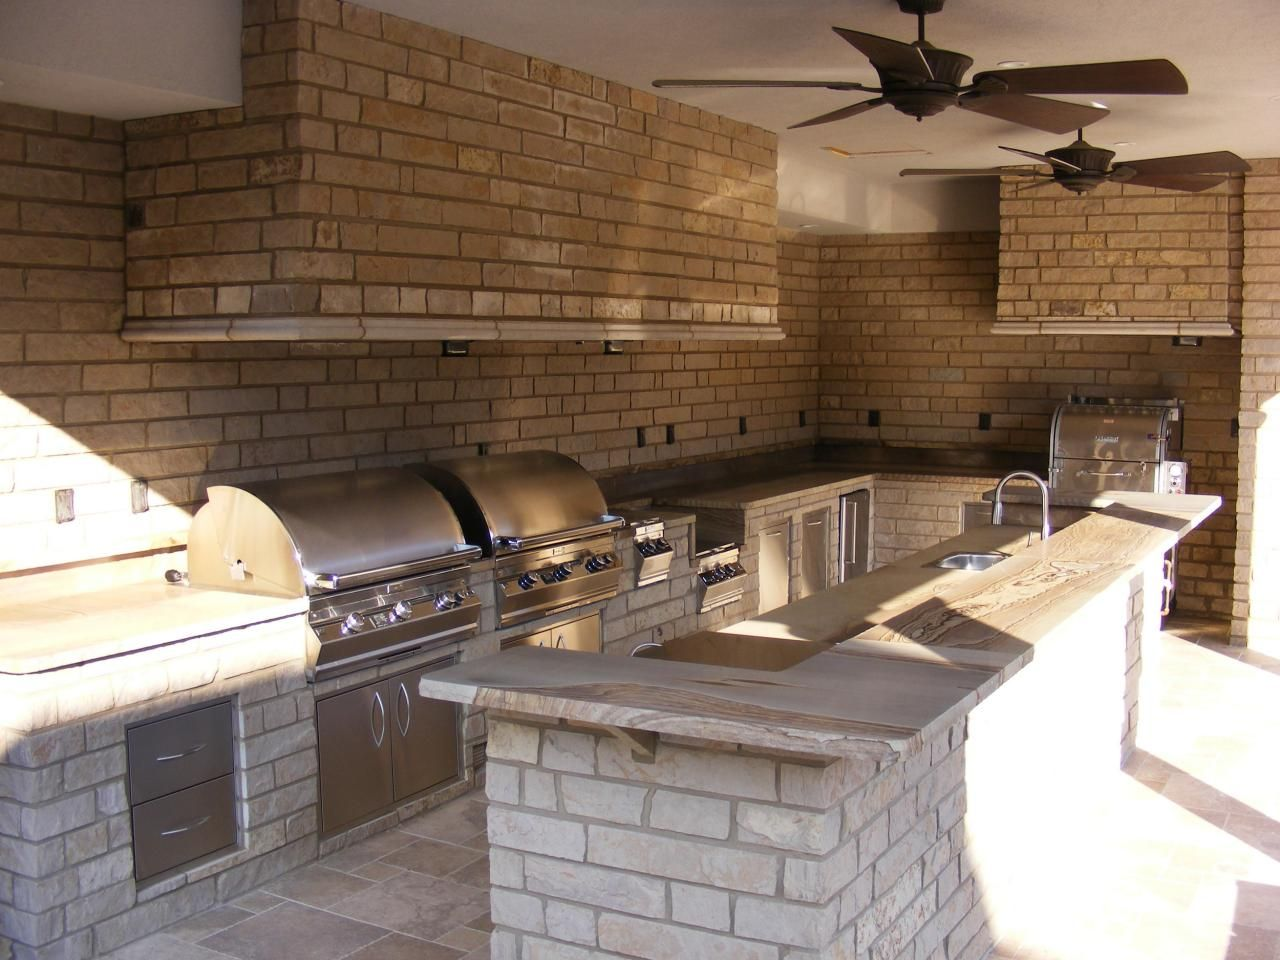 33 Amazing Outdoor Kitchens  Hgtv Kitchens And Deck Patio Amazing How To Design An Outdoor Kitchen Design Ideas